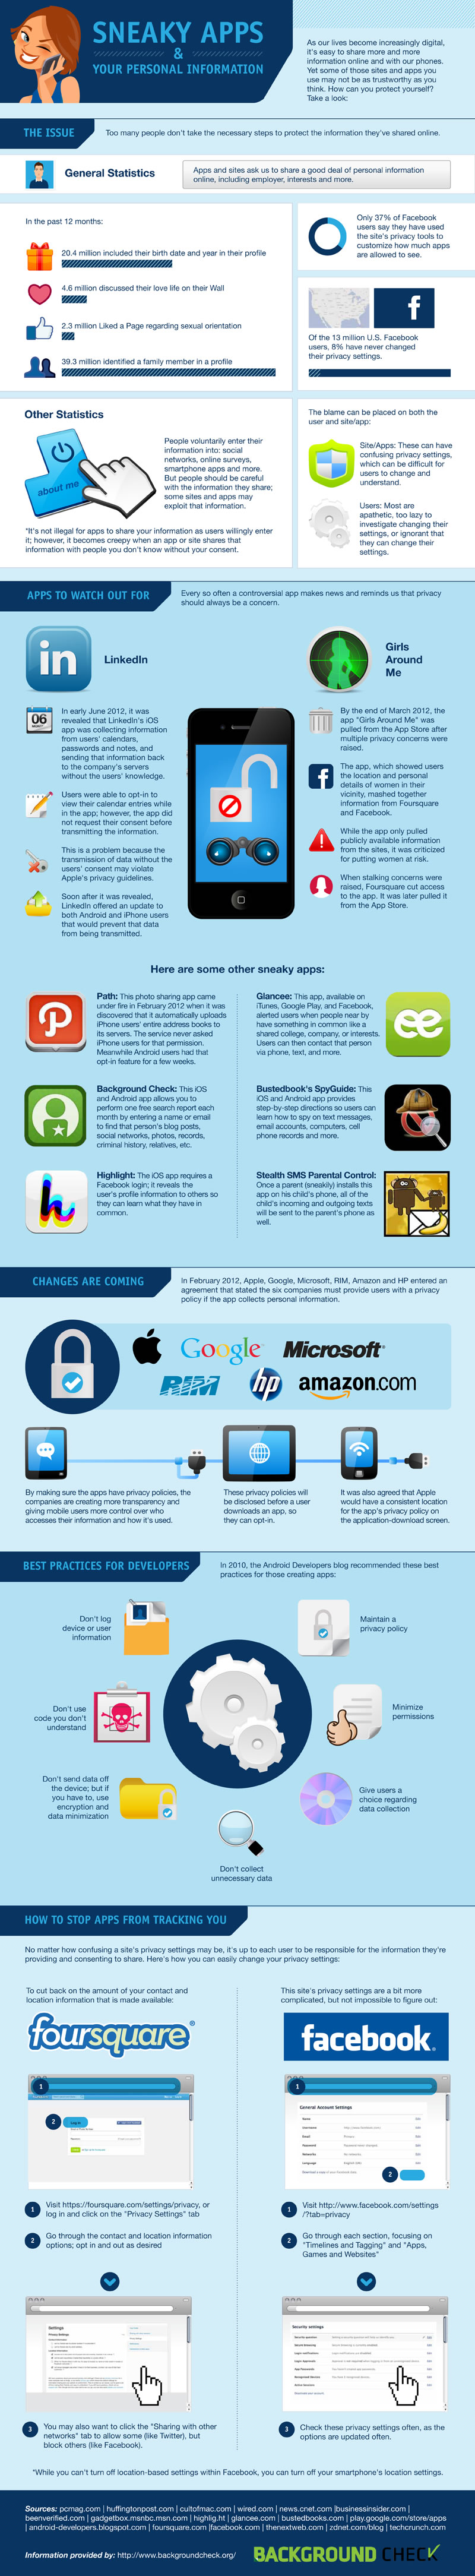 INFOGRAPHIC: Sneaky Apps and Your Personal Information